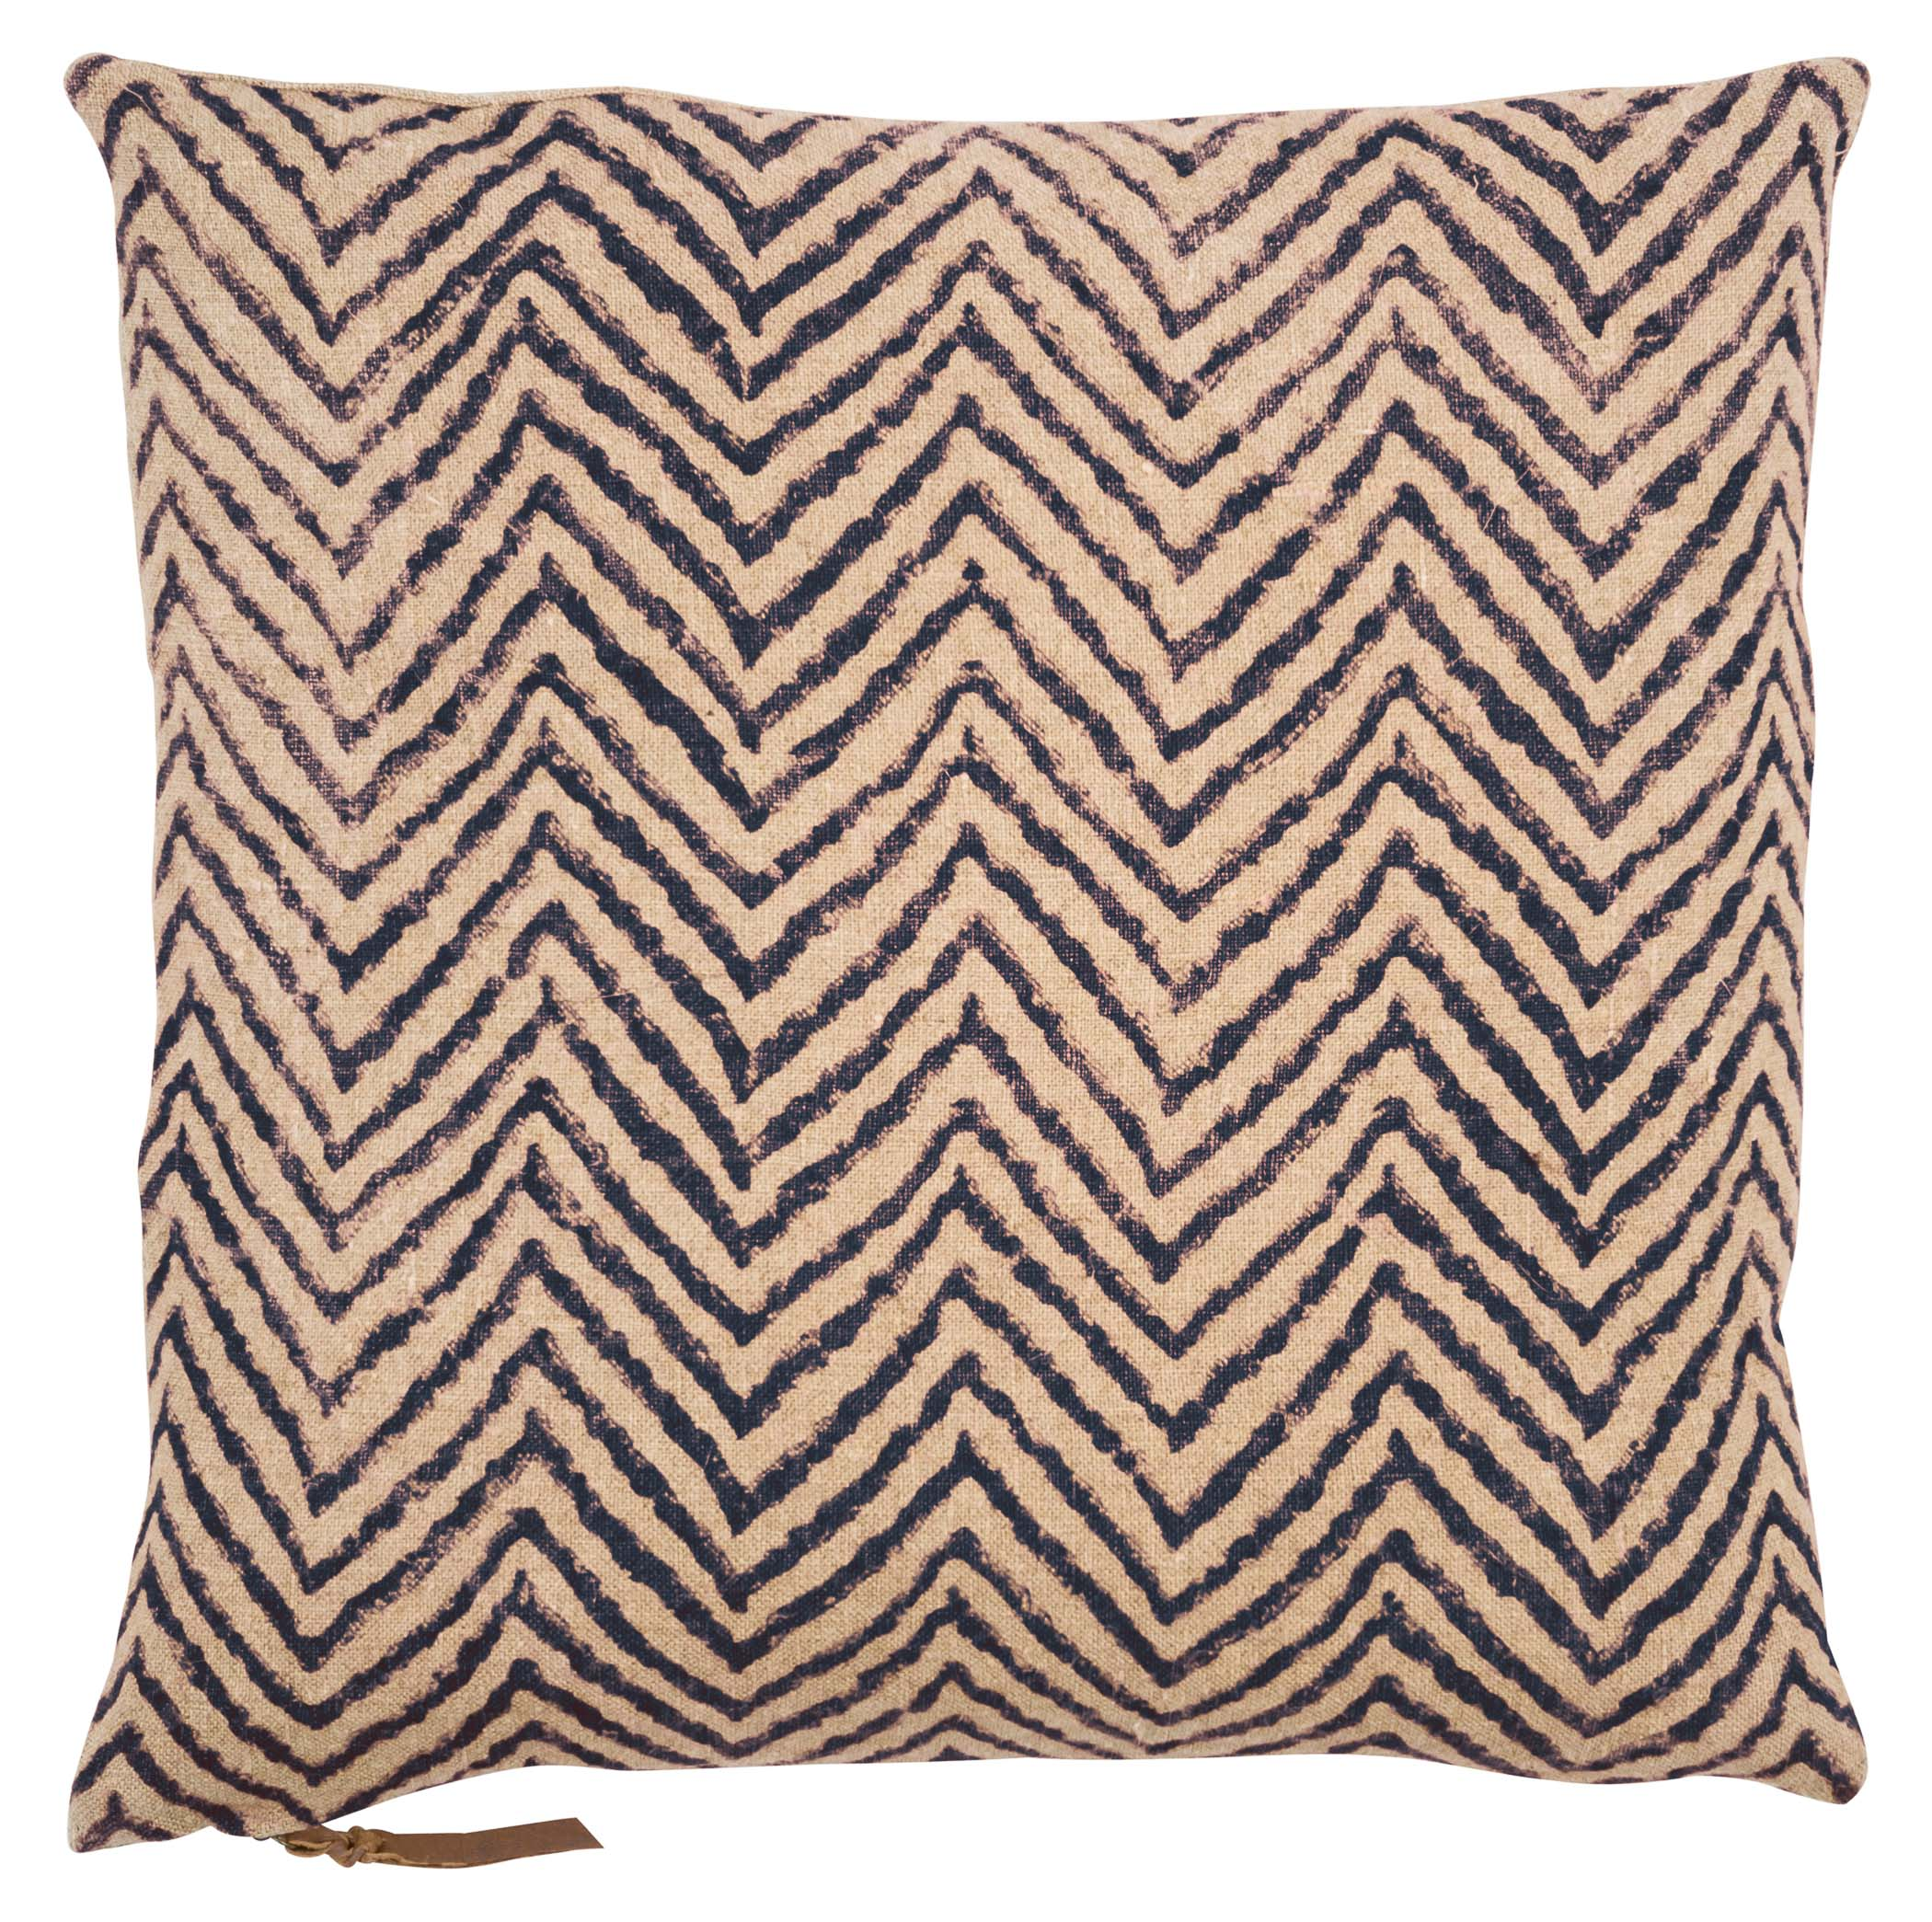 Cushion Cover - Chevron - Dark Blue